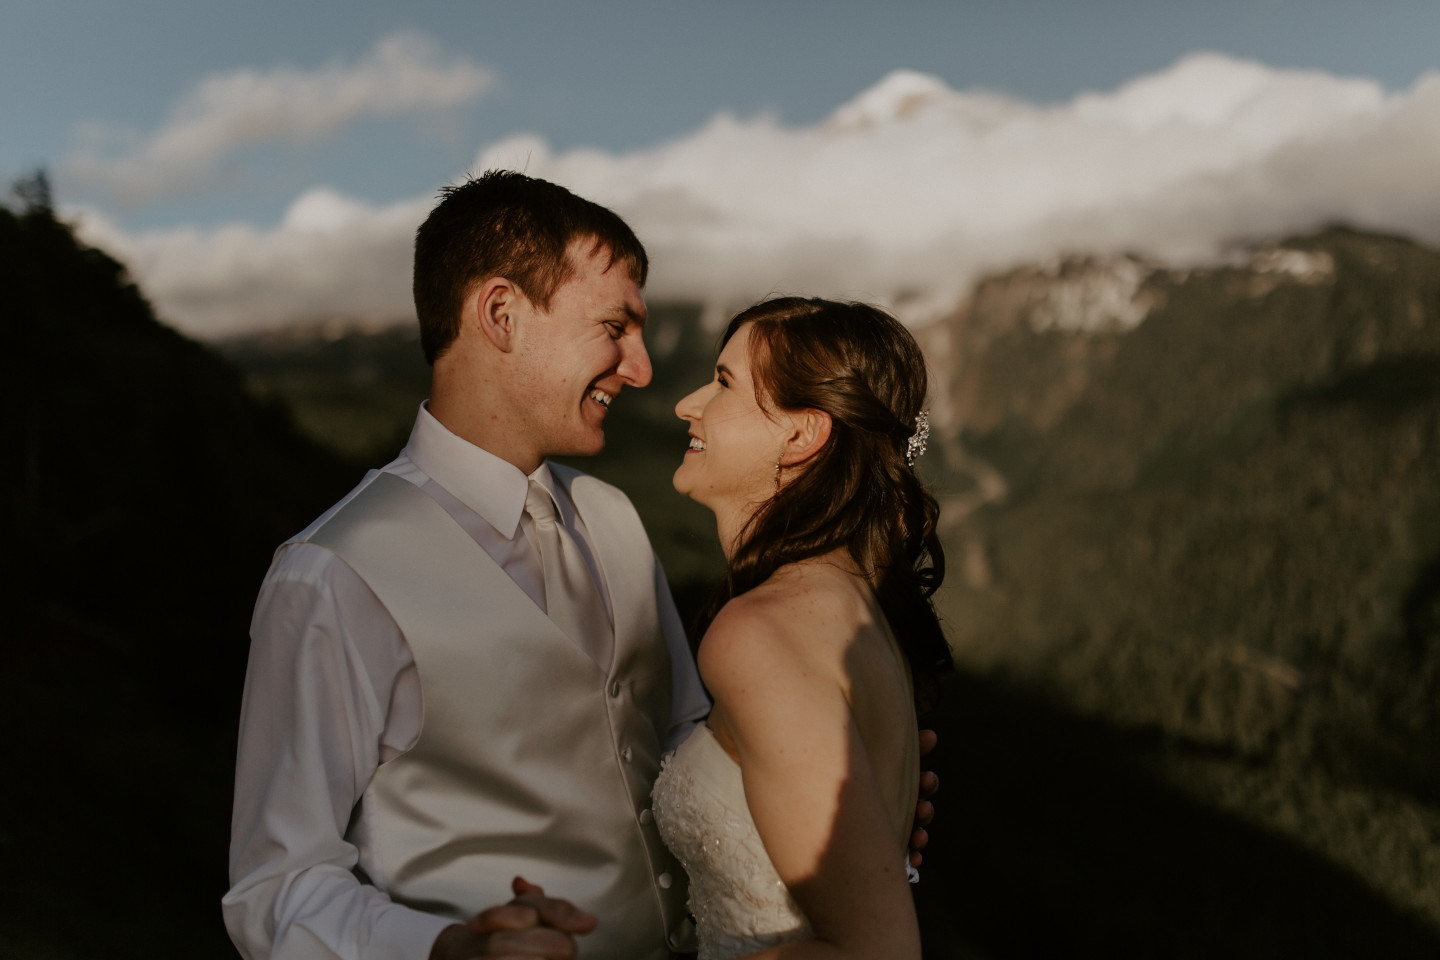 Moira and Ryans smile at each other near at Mount Hood. Adventure elopement wedding shoot by Sienna Plus Josh.